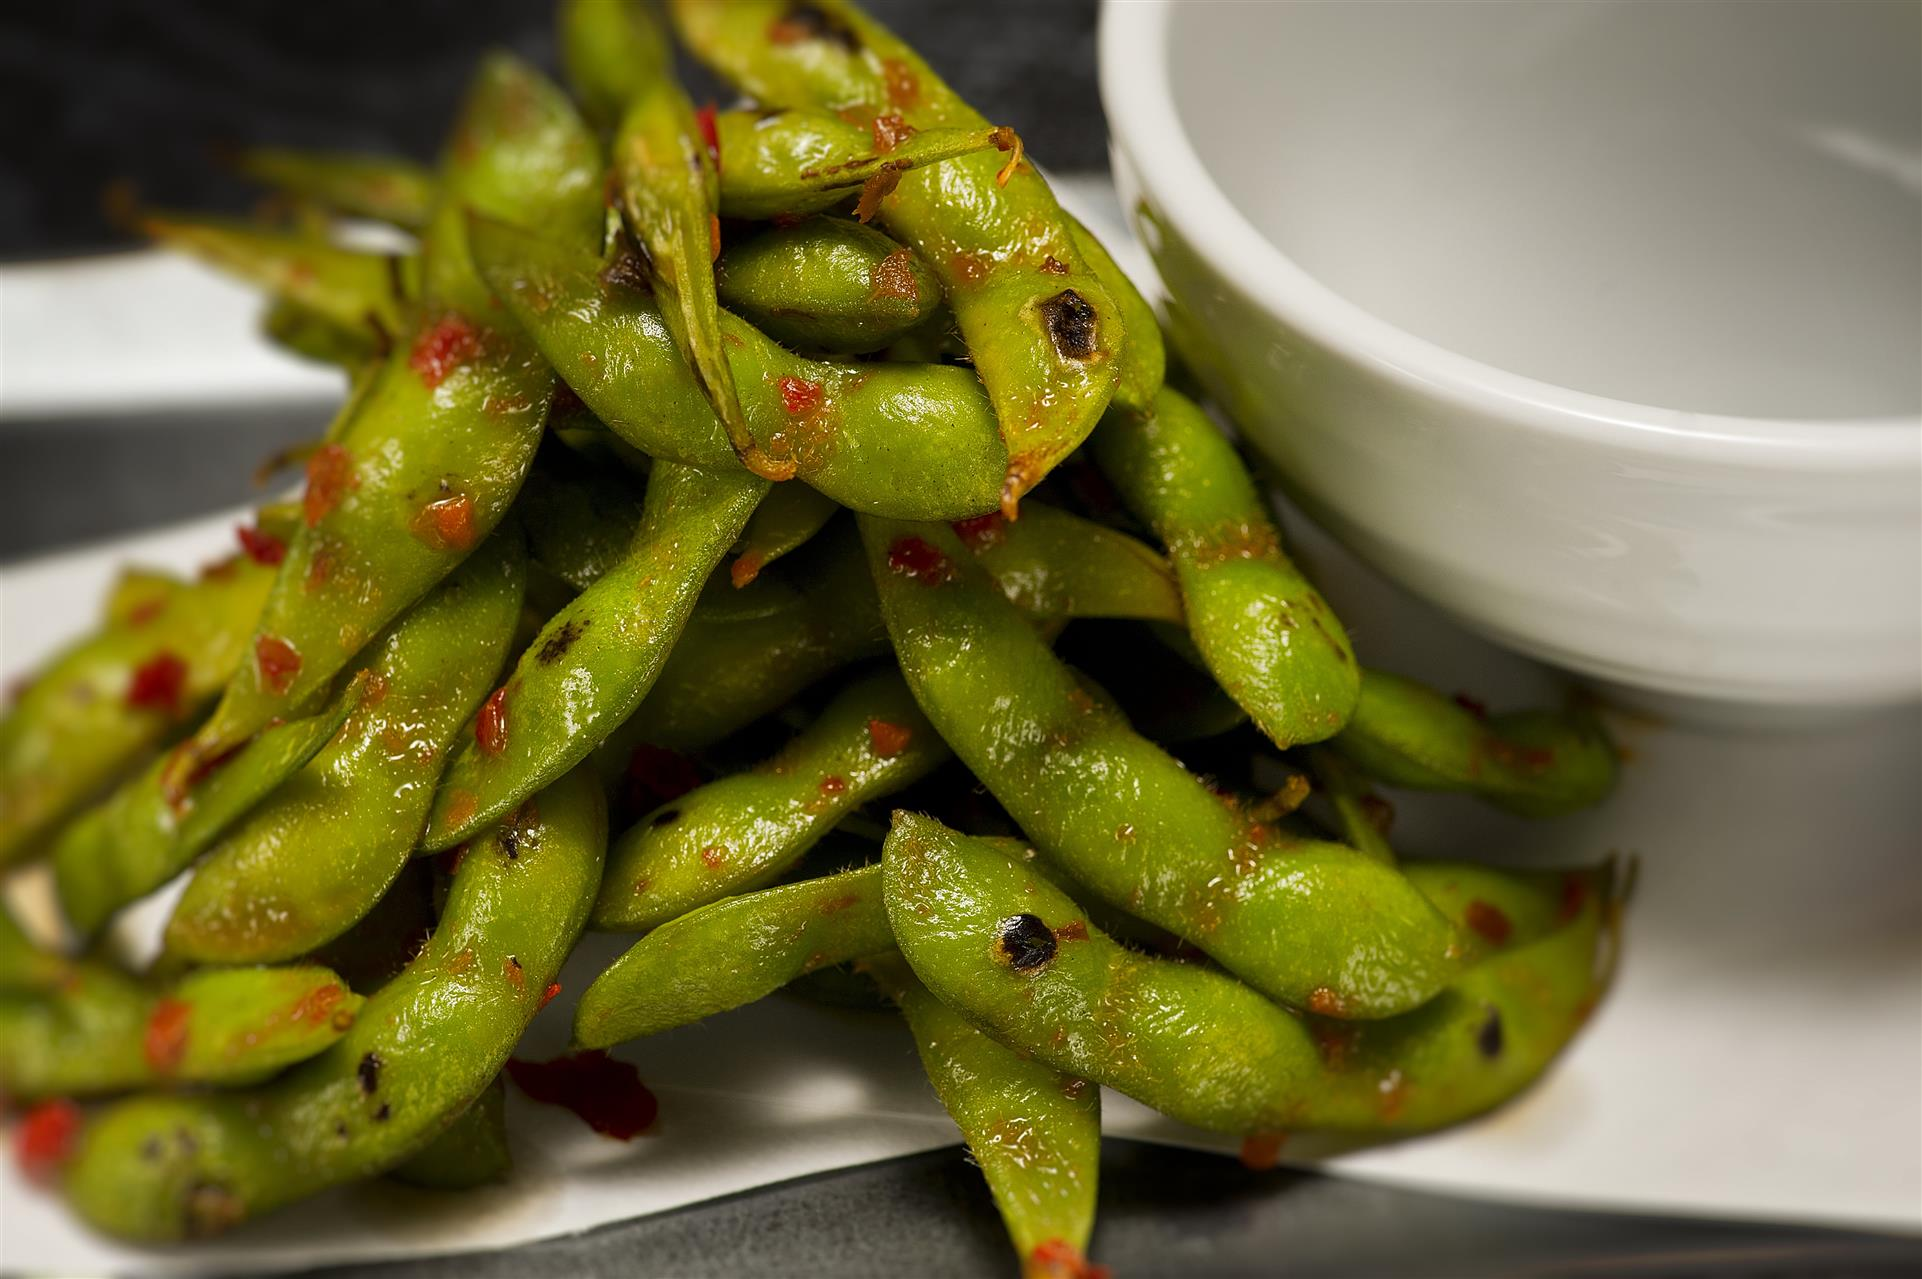 edamame beans with a spicy brown sauce on top